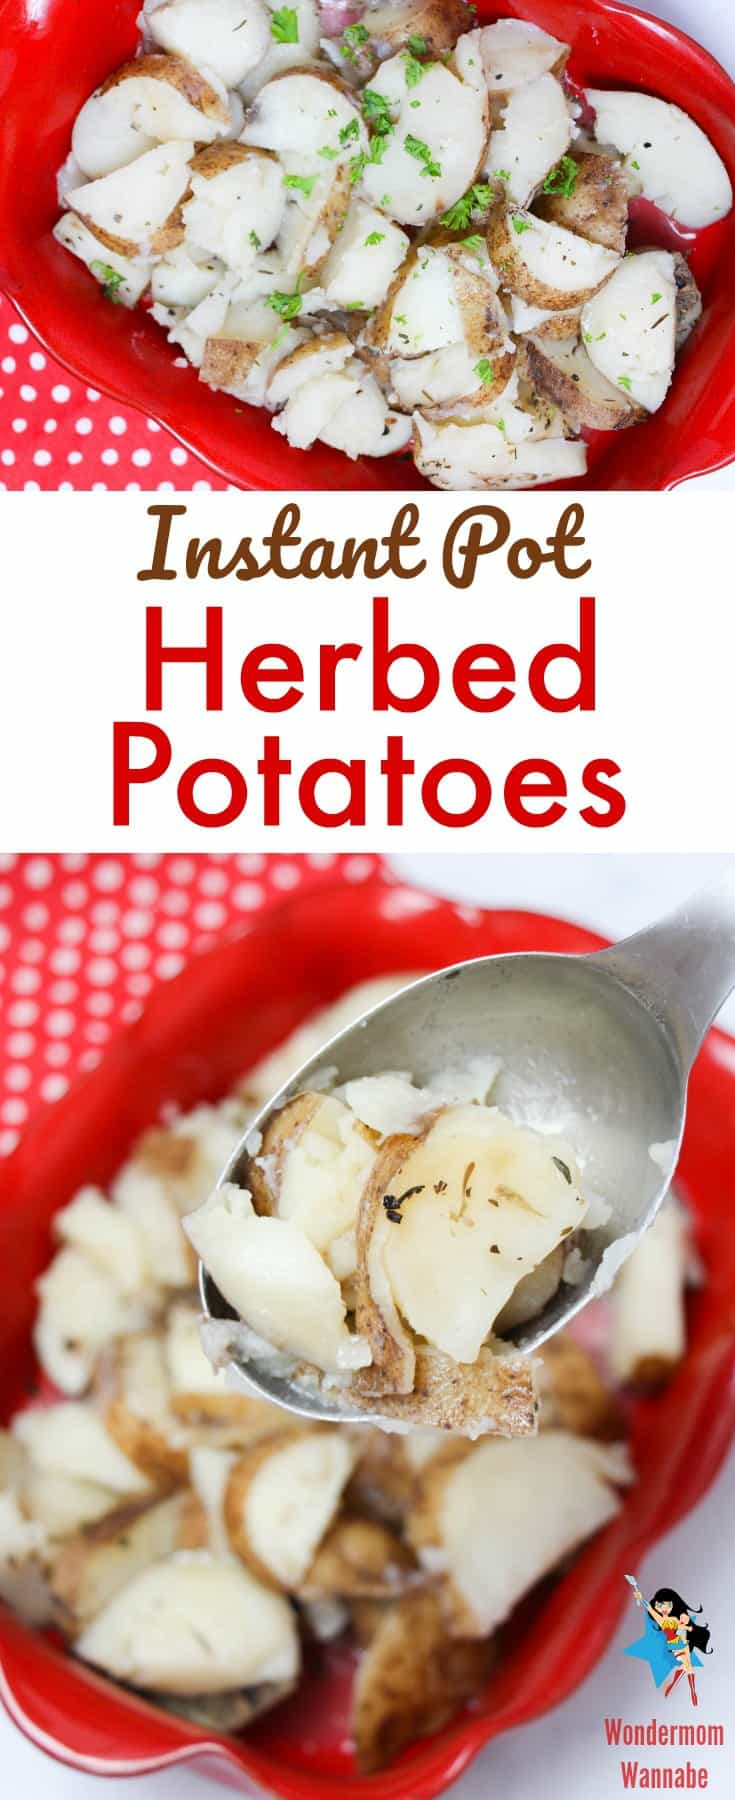 a collage of herbed potatoes in a red dish on a red and white polka dot cloth with title text reading Instant Pot Herbed Potatoes